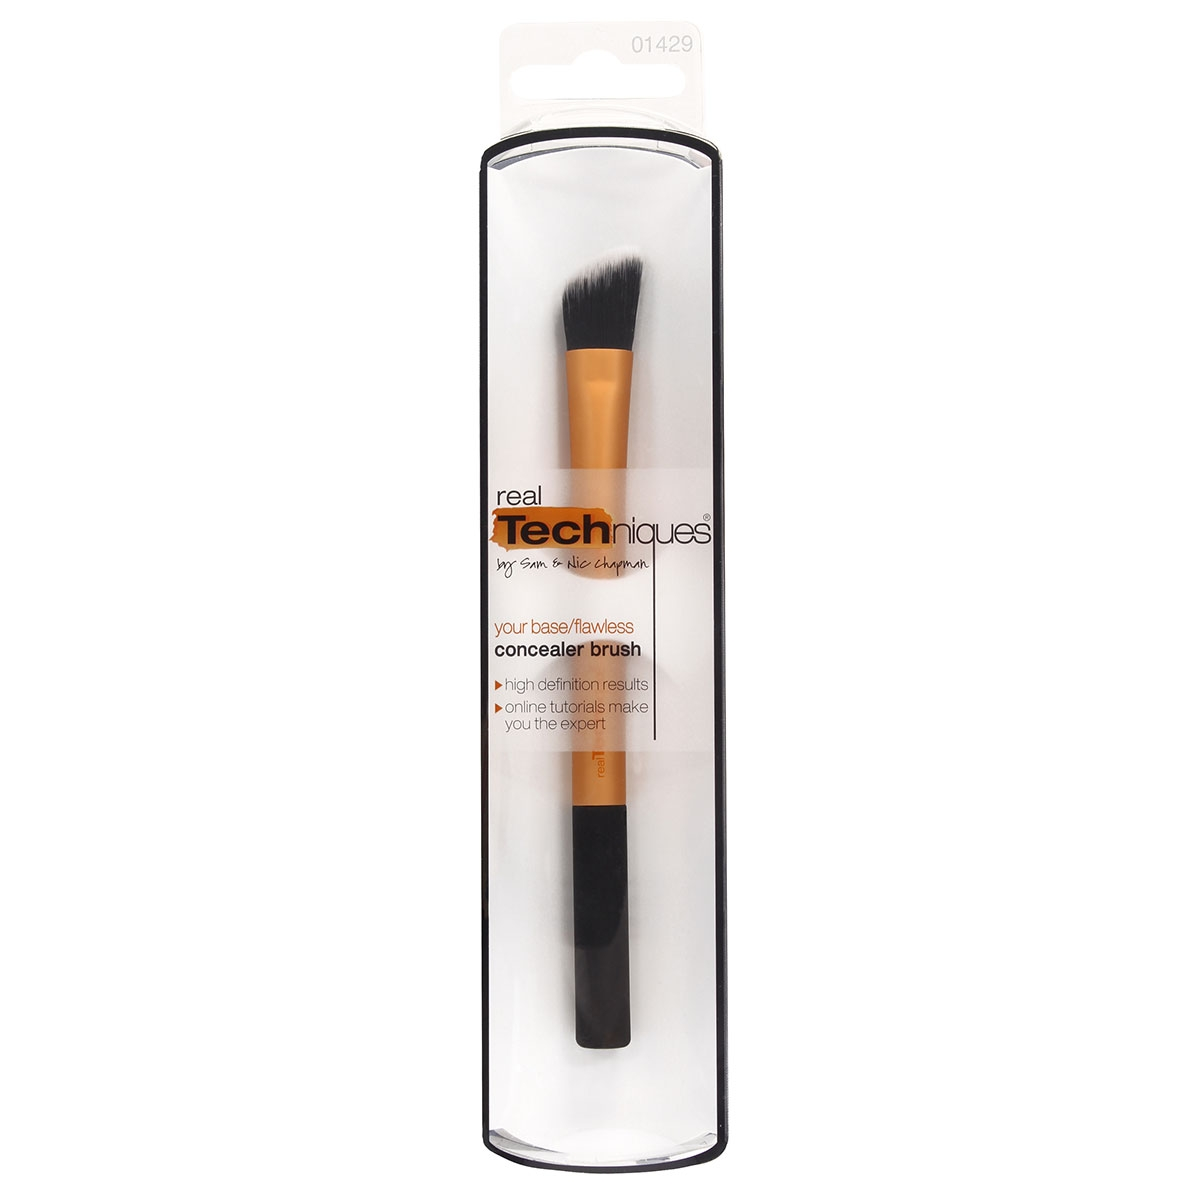 Кисть для консилера Concealer Brush Real Techniques